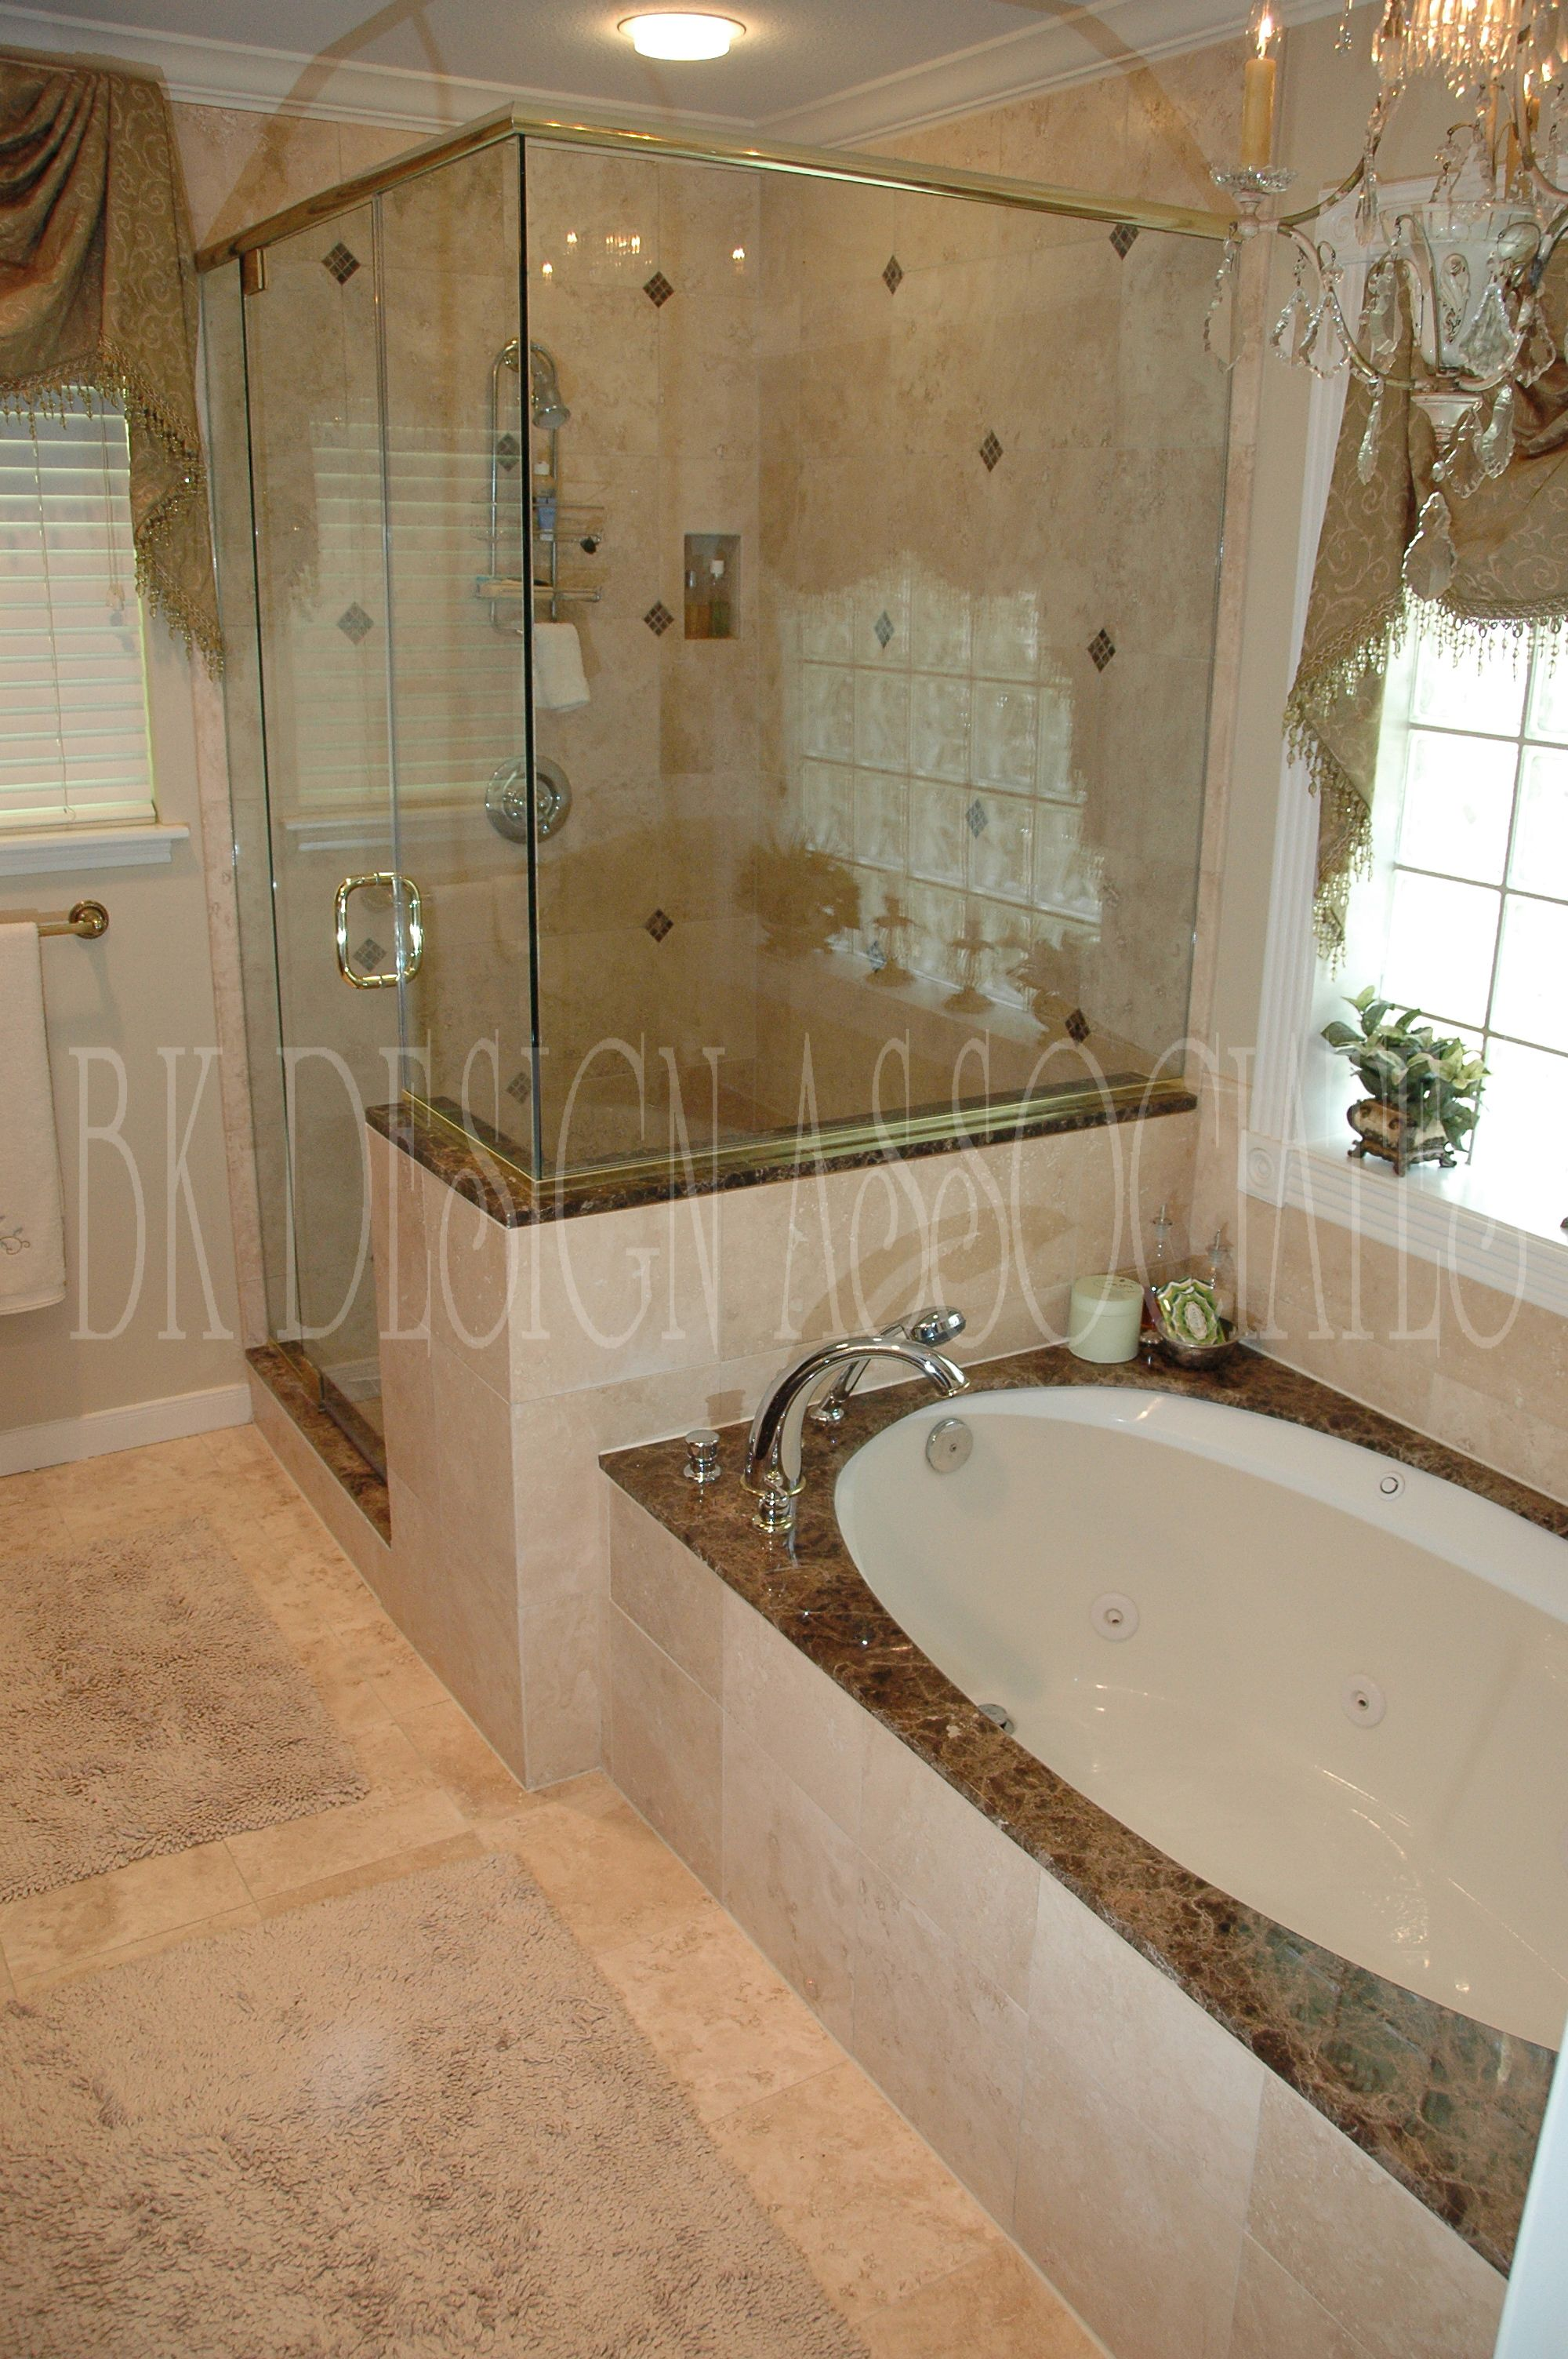 Master Suite Bathroom Ideas Dreammasterbathroom Bathroom Tub Shower Combo Bathroom Design Luxury Bathroom Shower